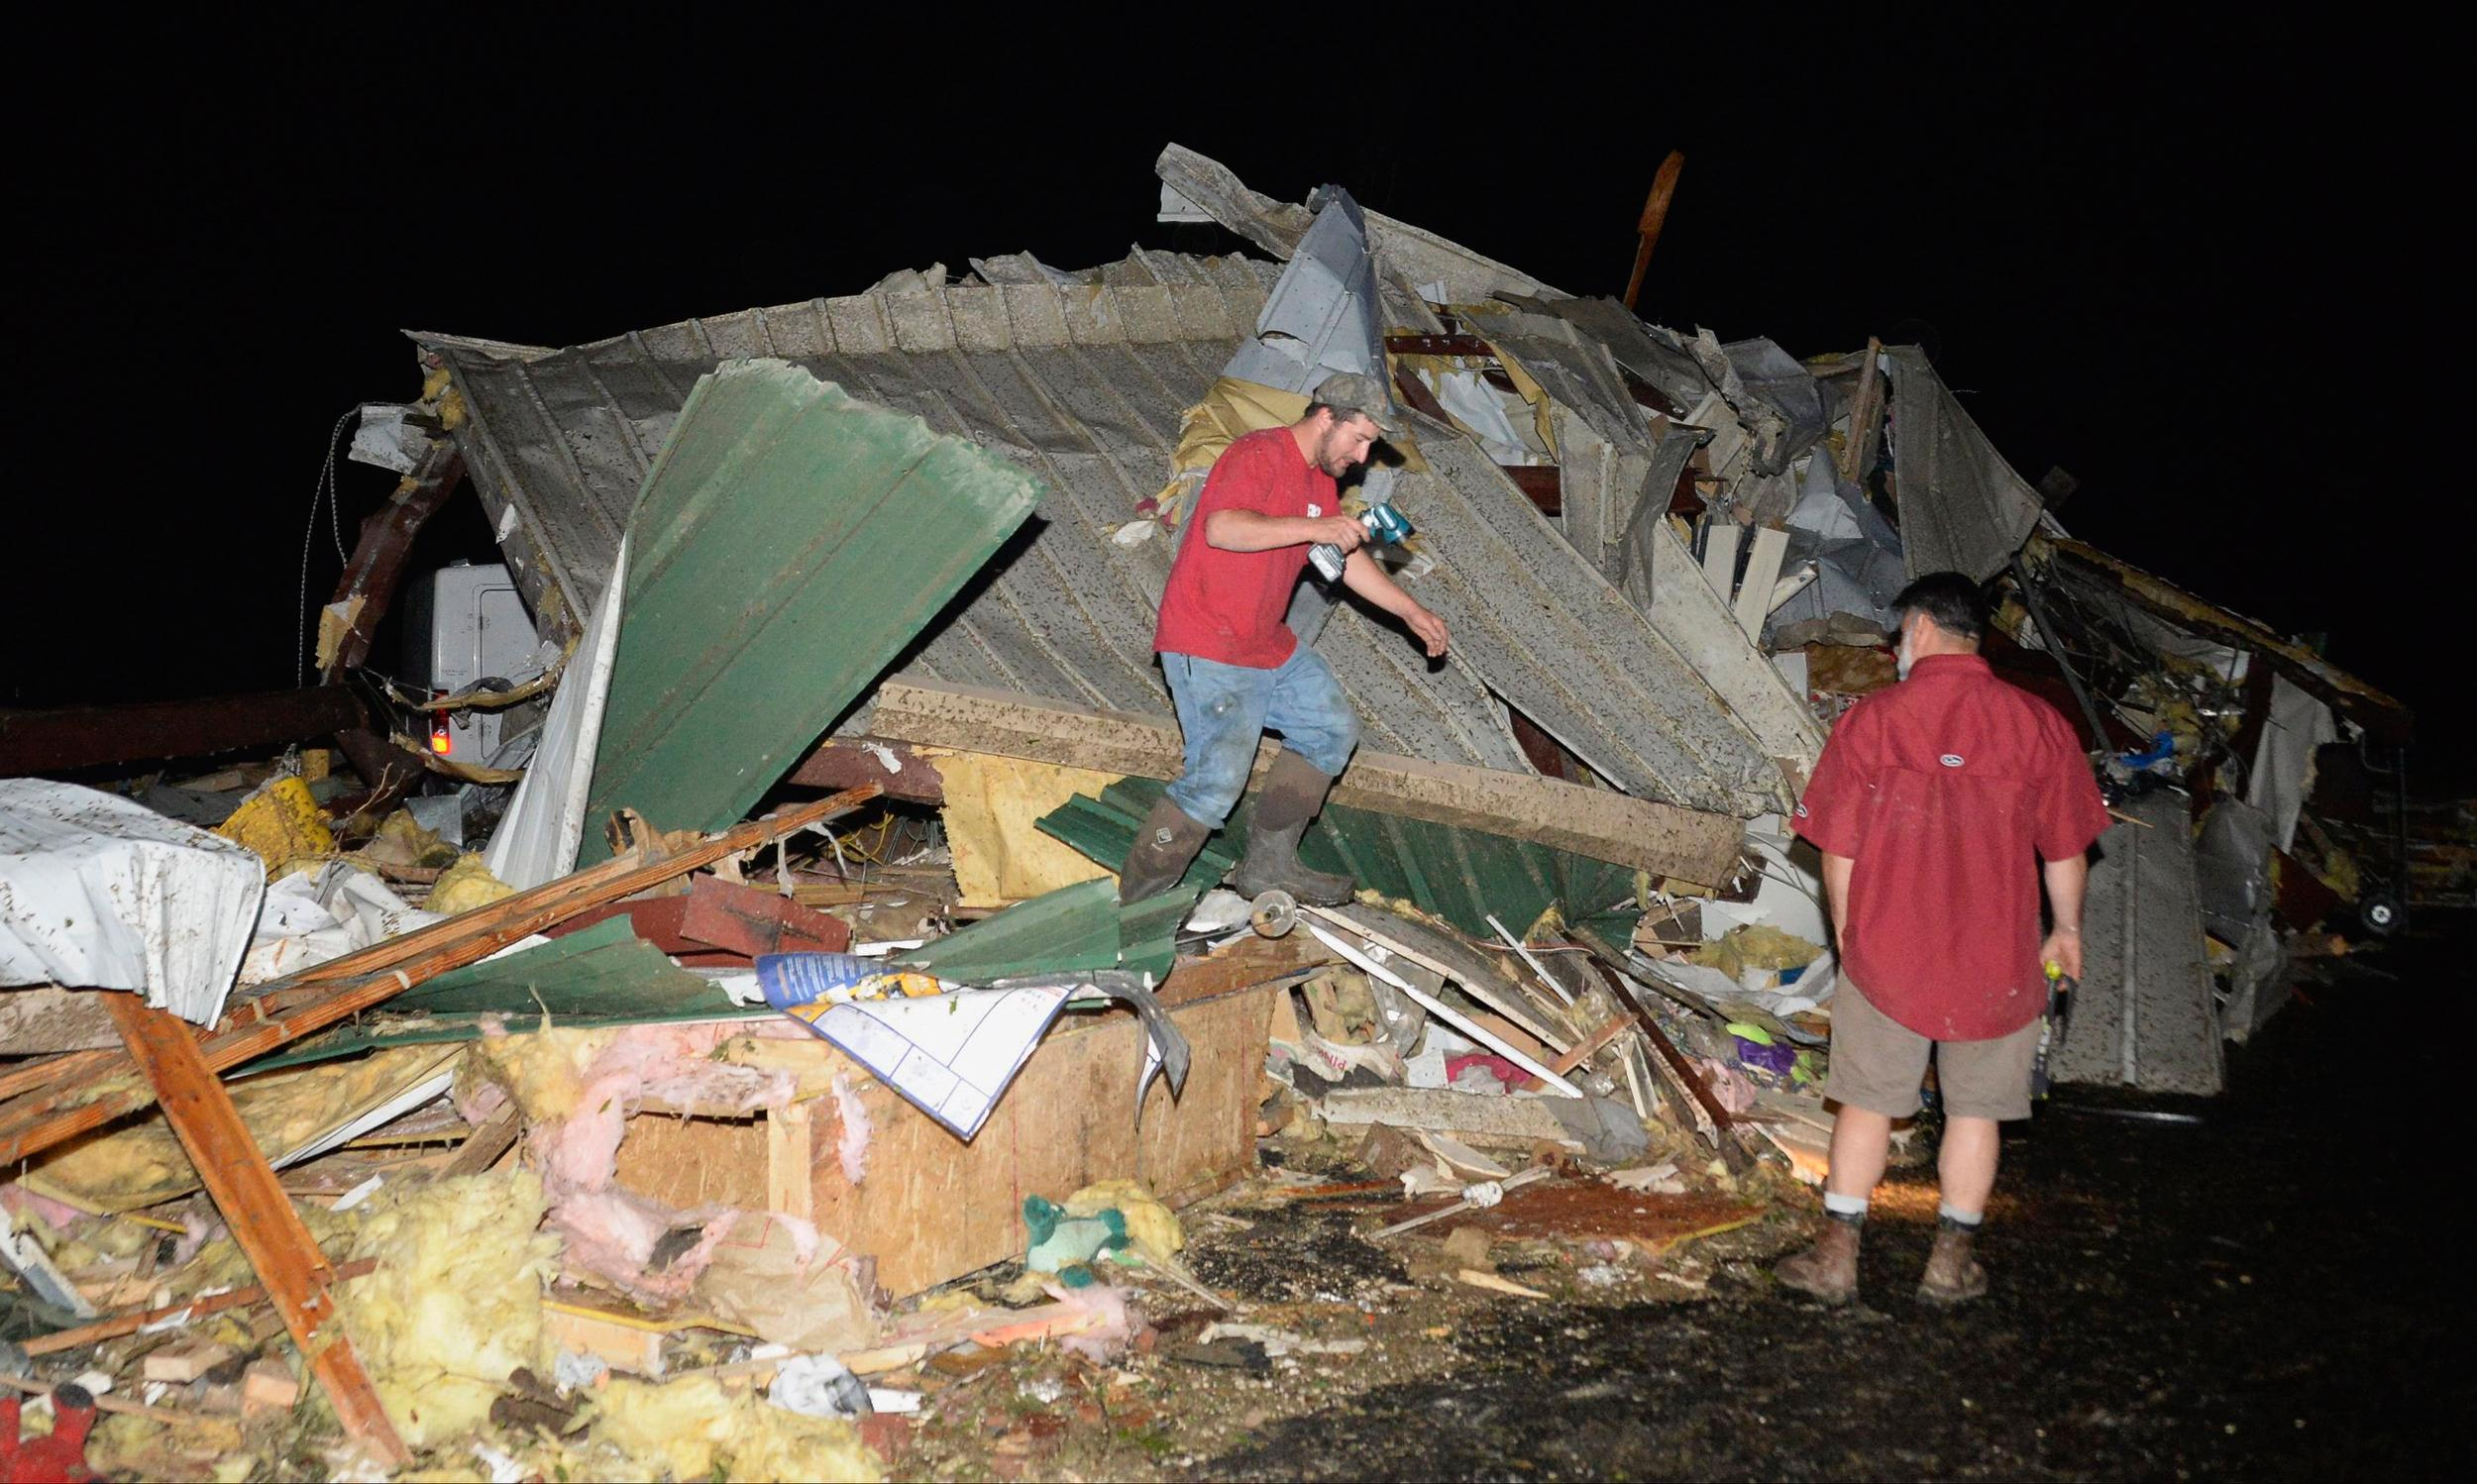 Image: Business owners look over damage after a tornado hit the town of Mayflower, Arkansas